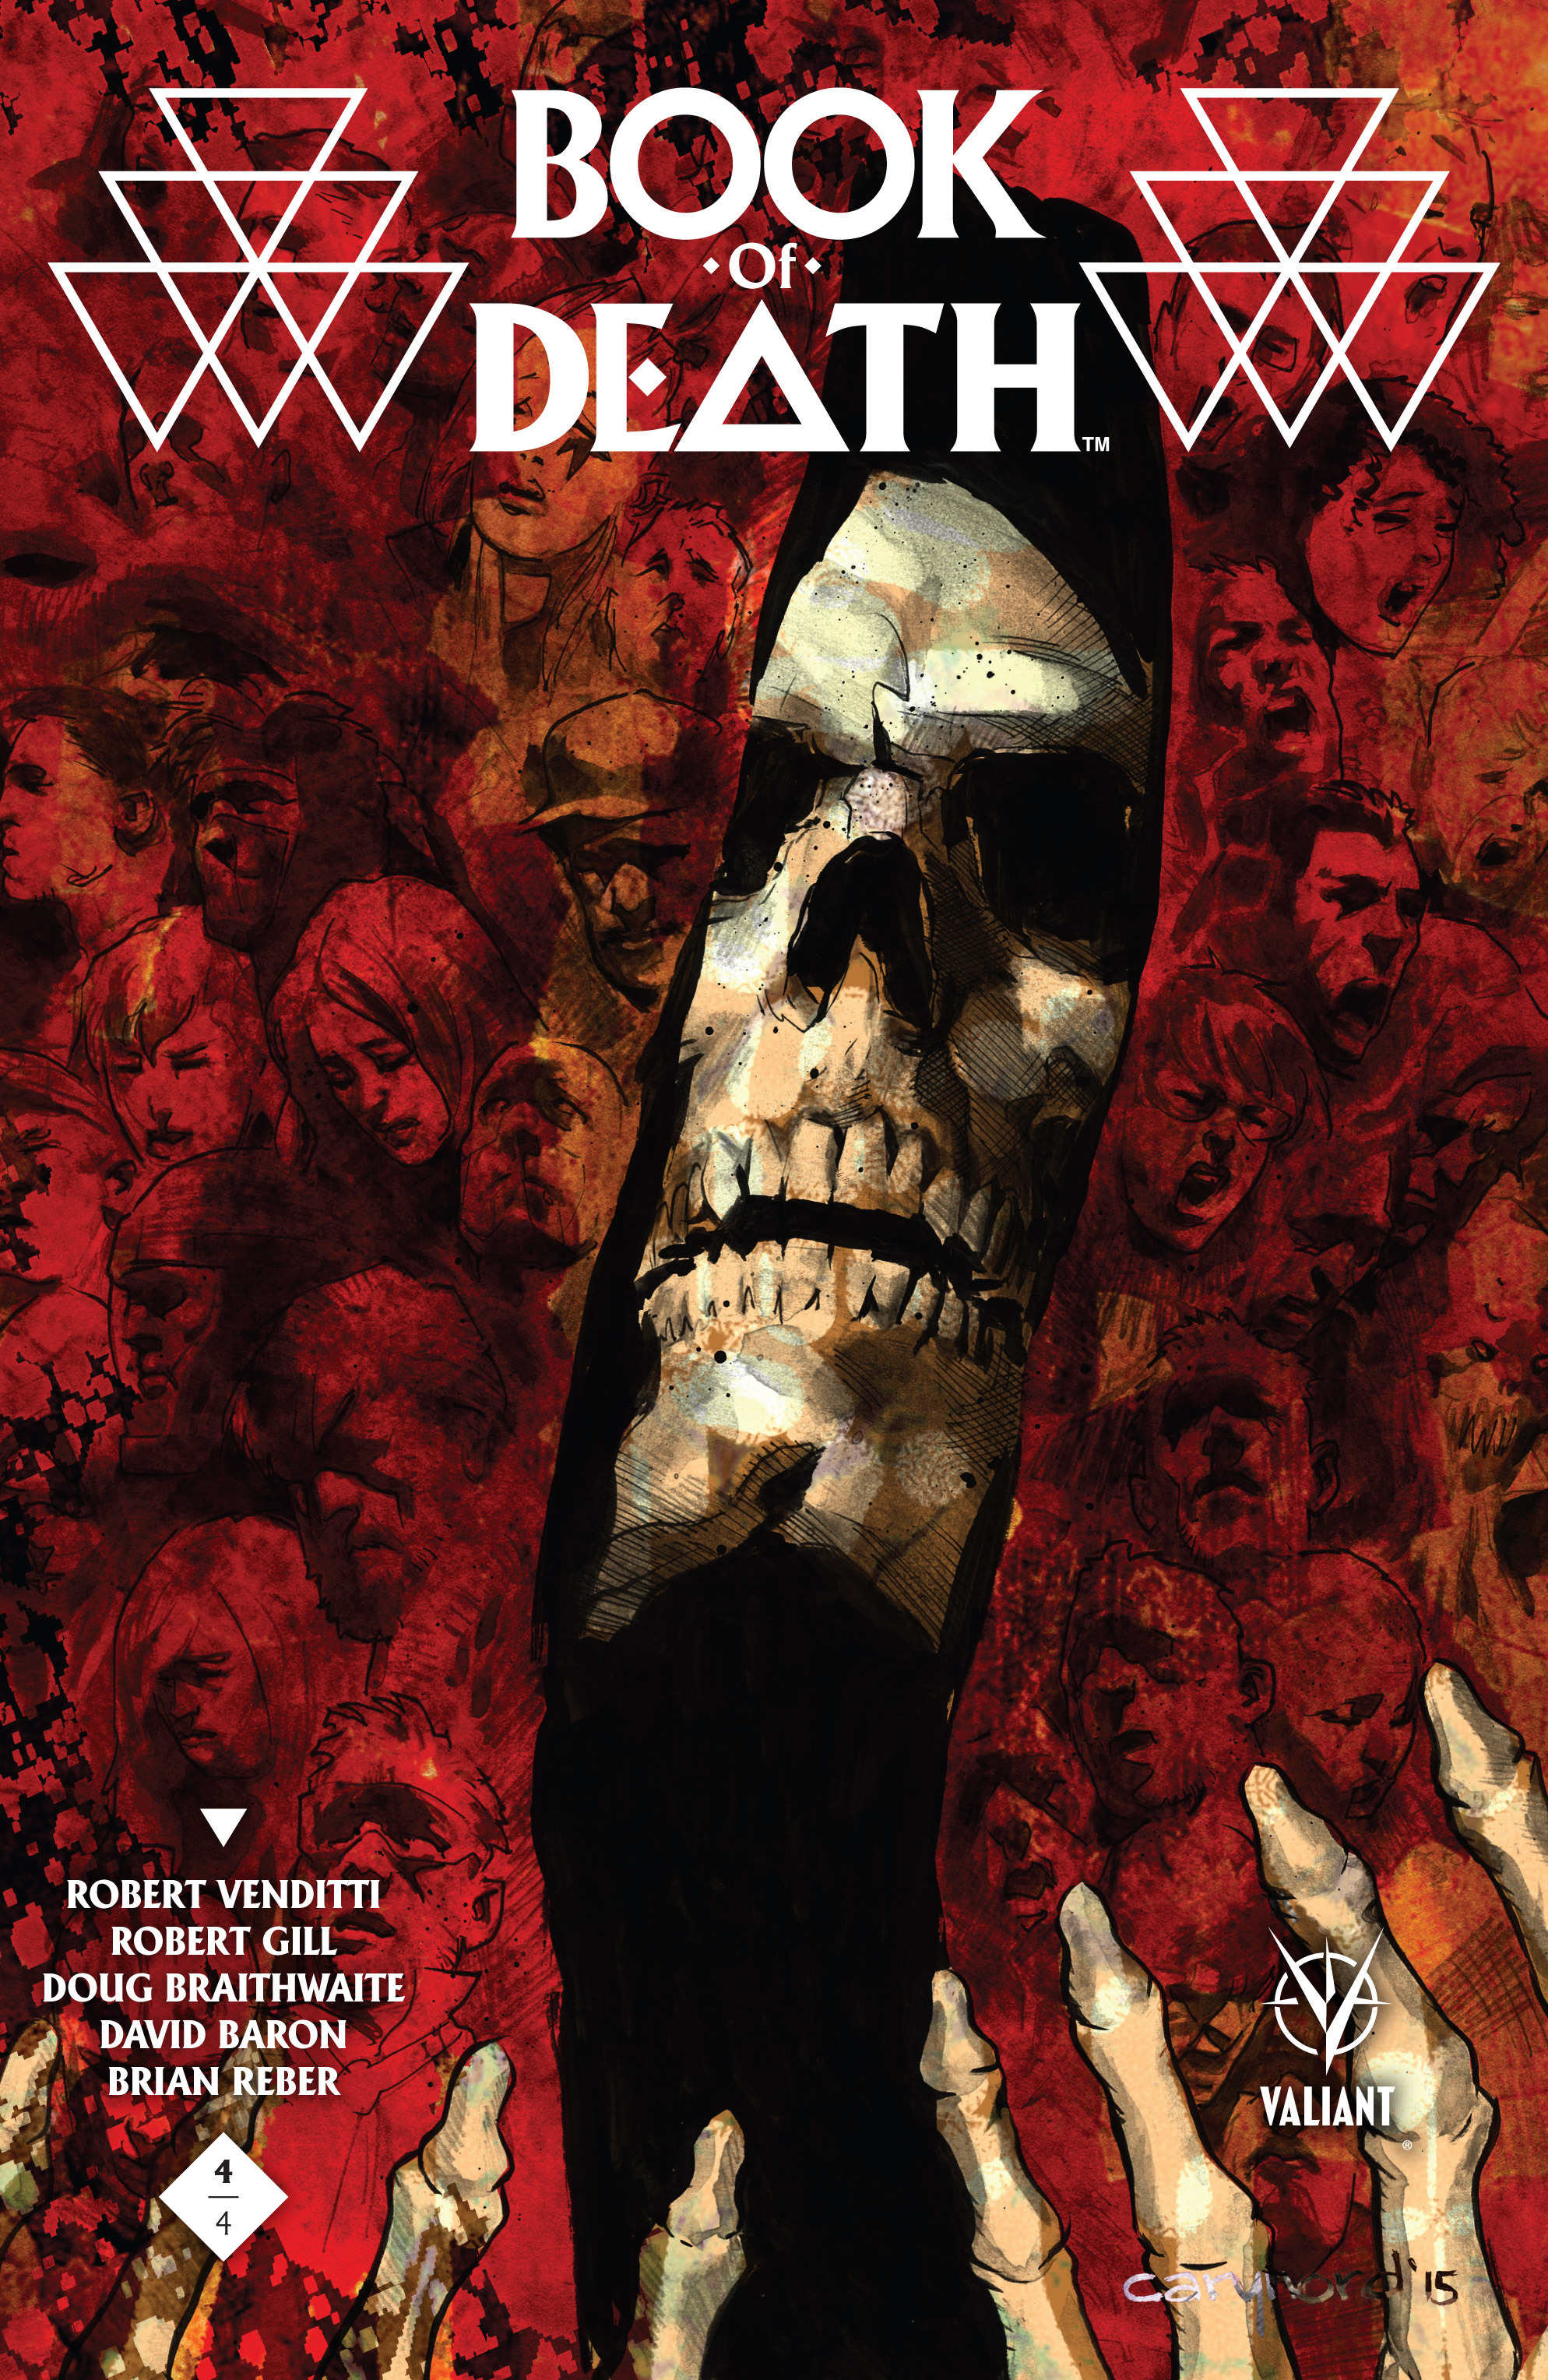 Book of Death Issue 4